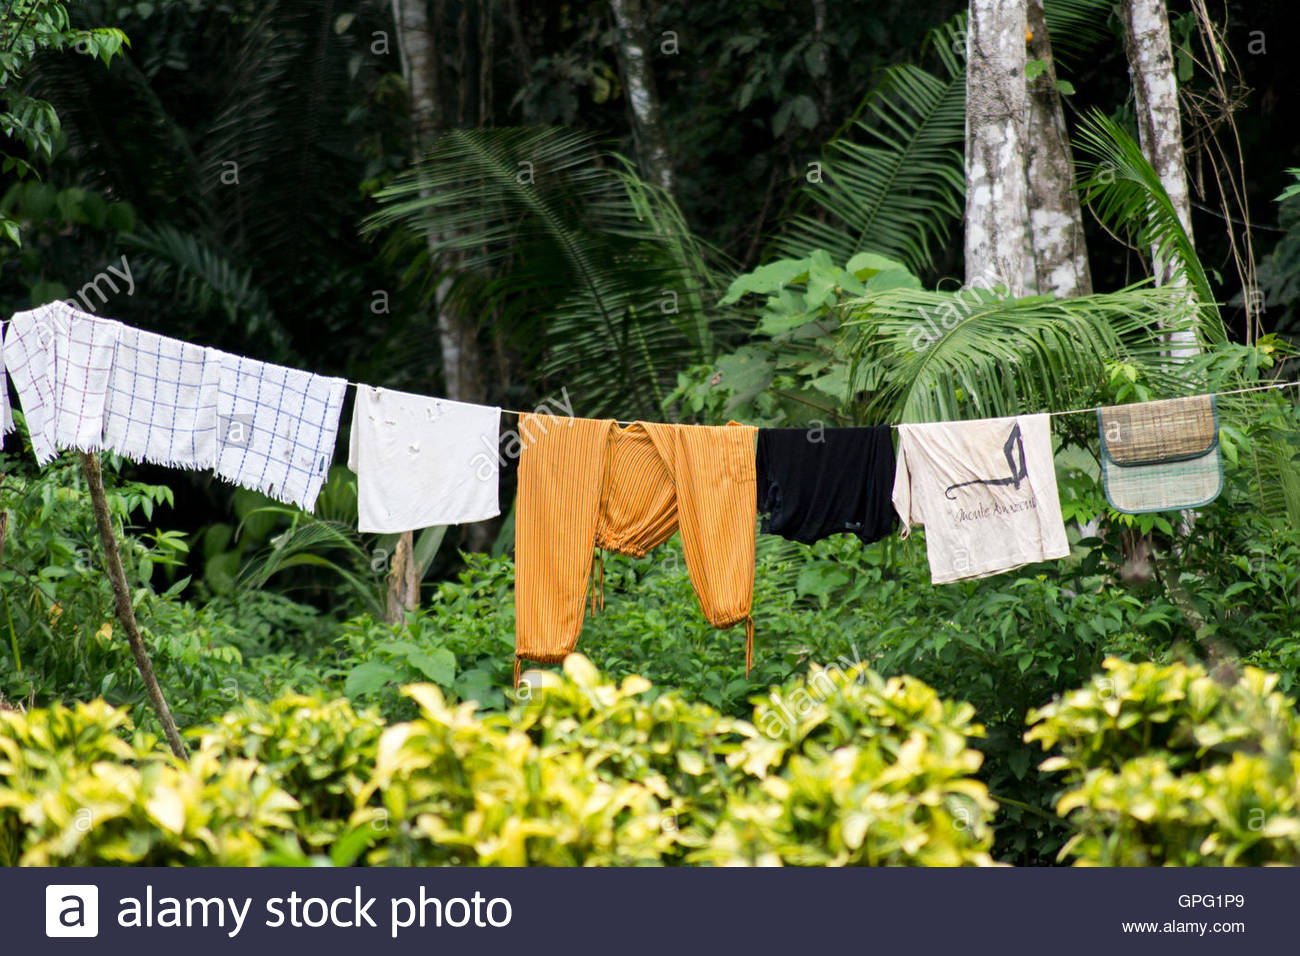 Clothesline with wet apparels drying under sun. Tambopata reserve, Amazon rainforest, Peru - Stock Image